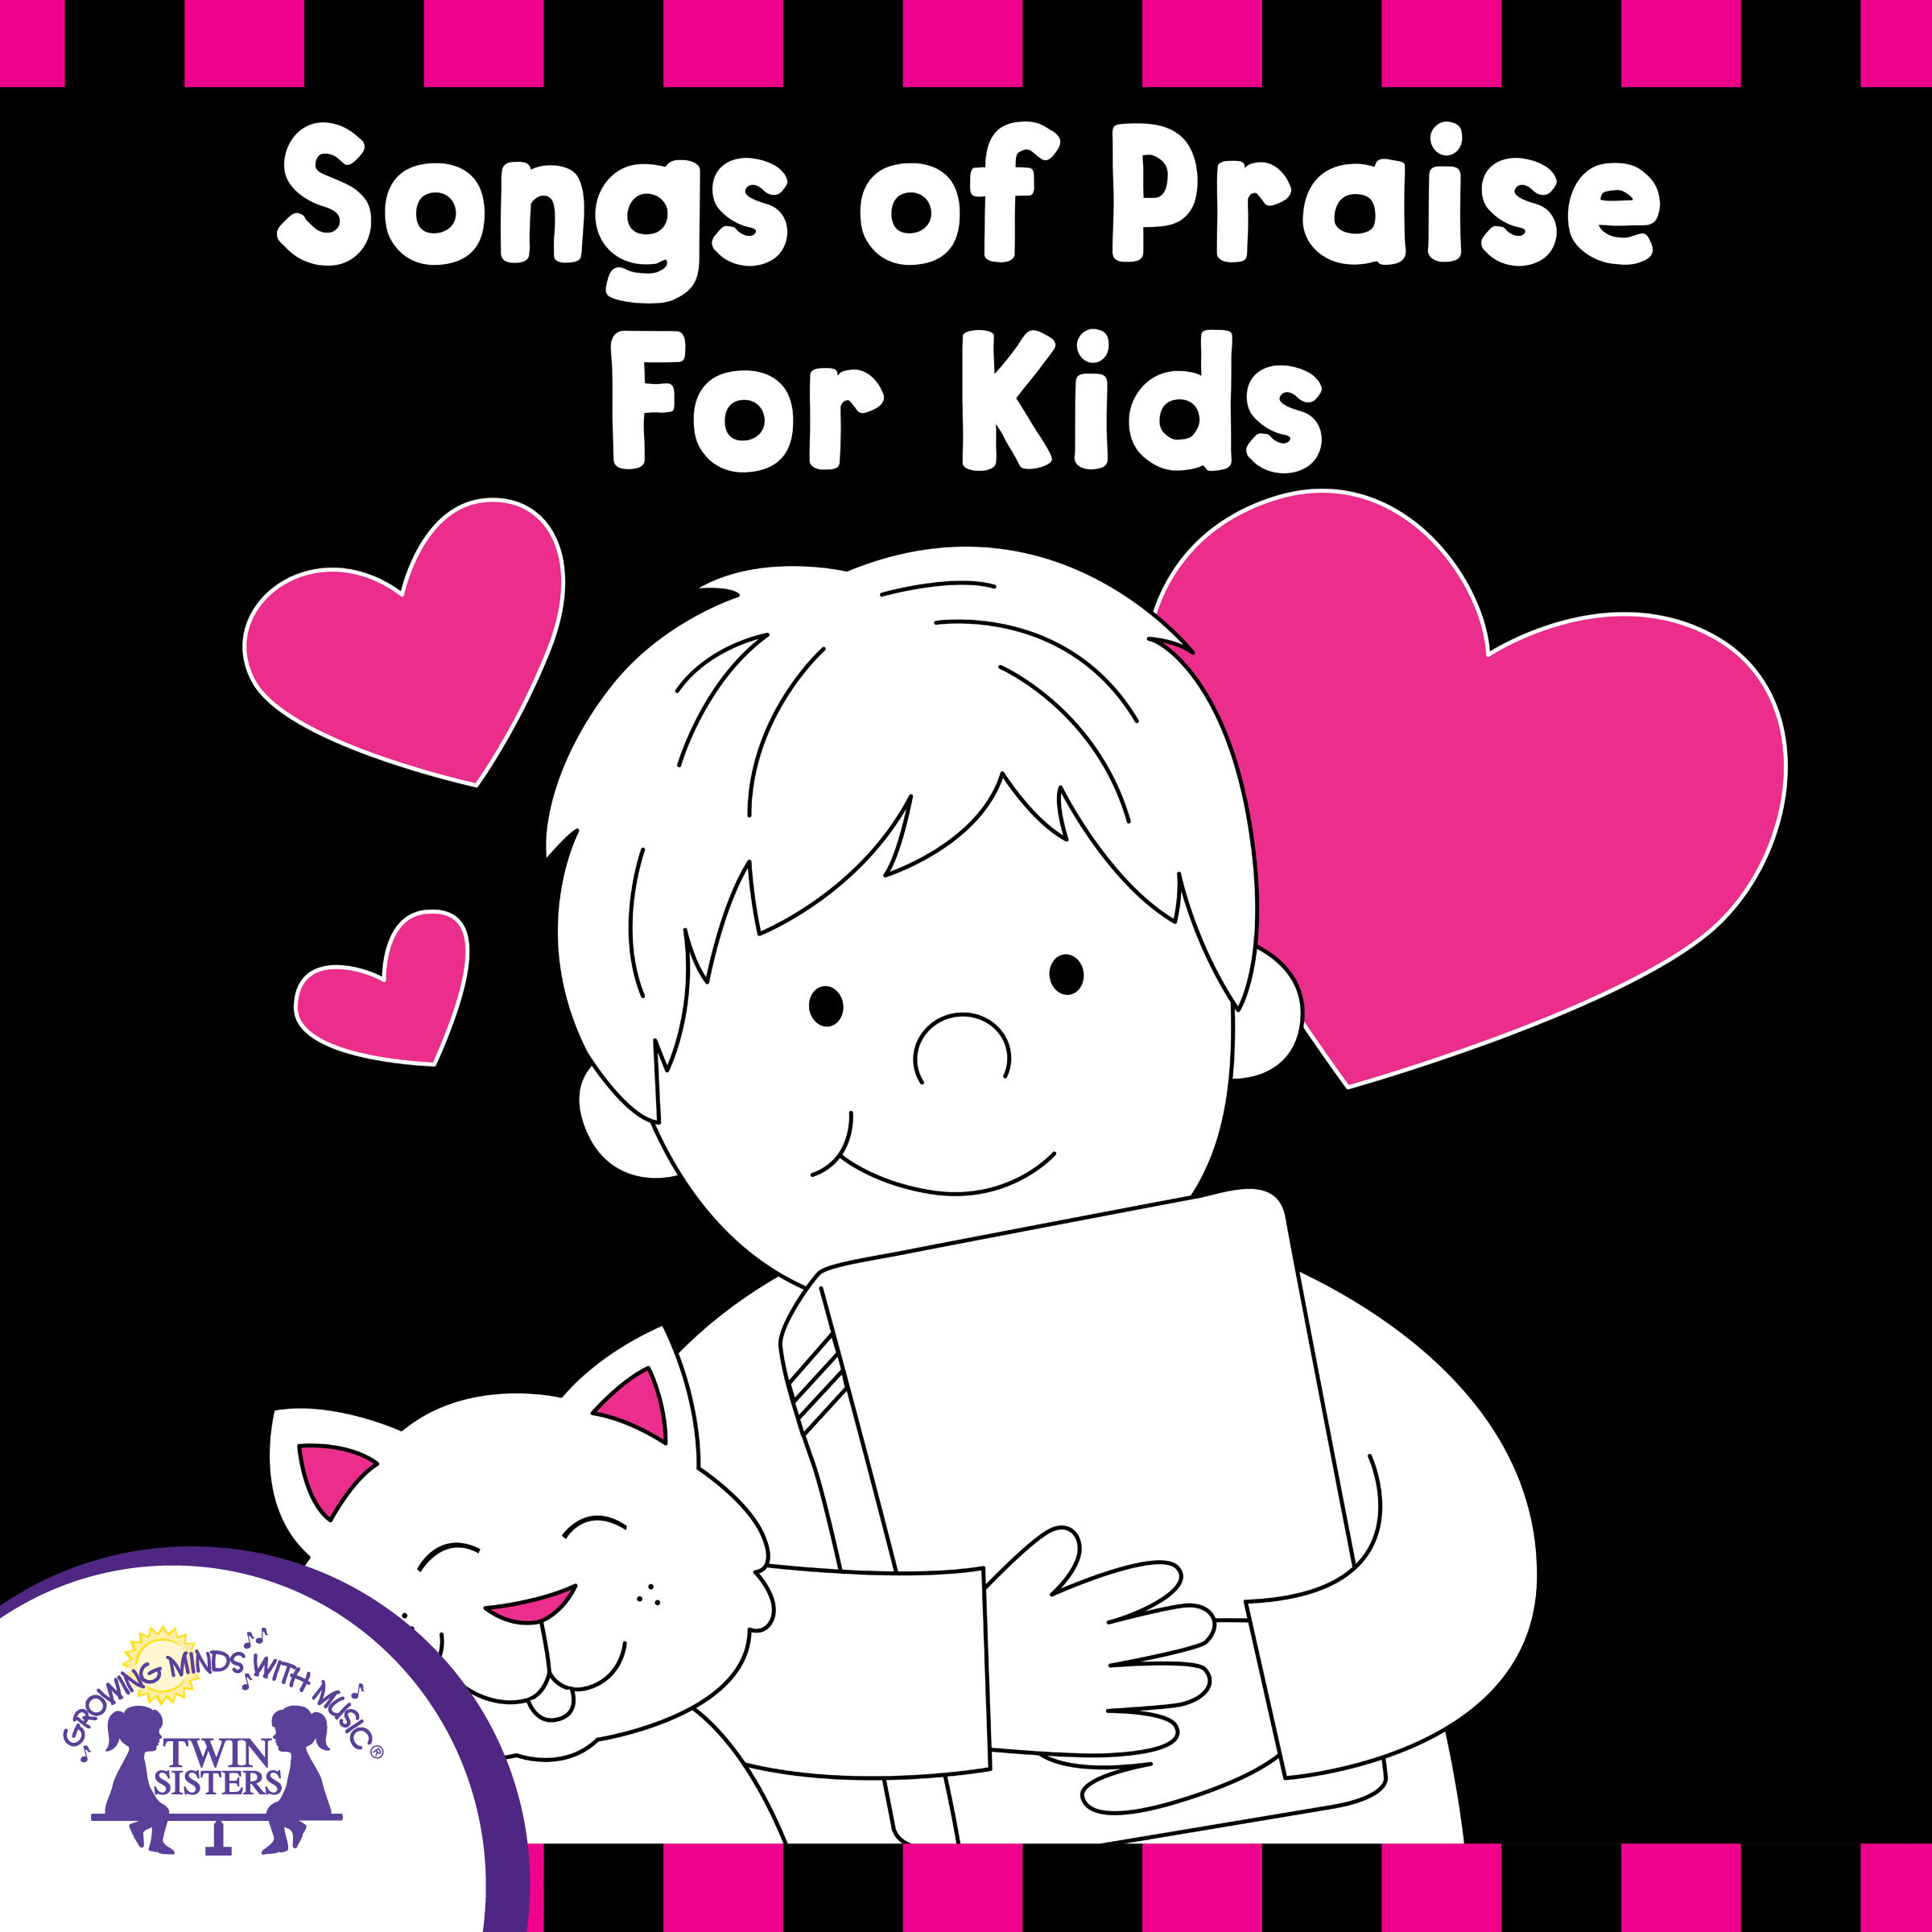 Songs Of Praise For Kids | Twin Sisters